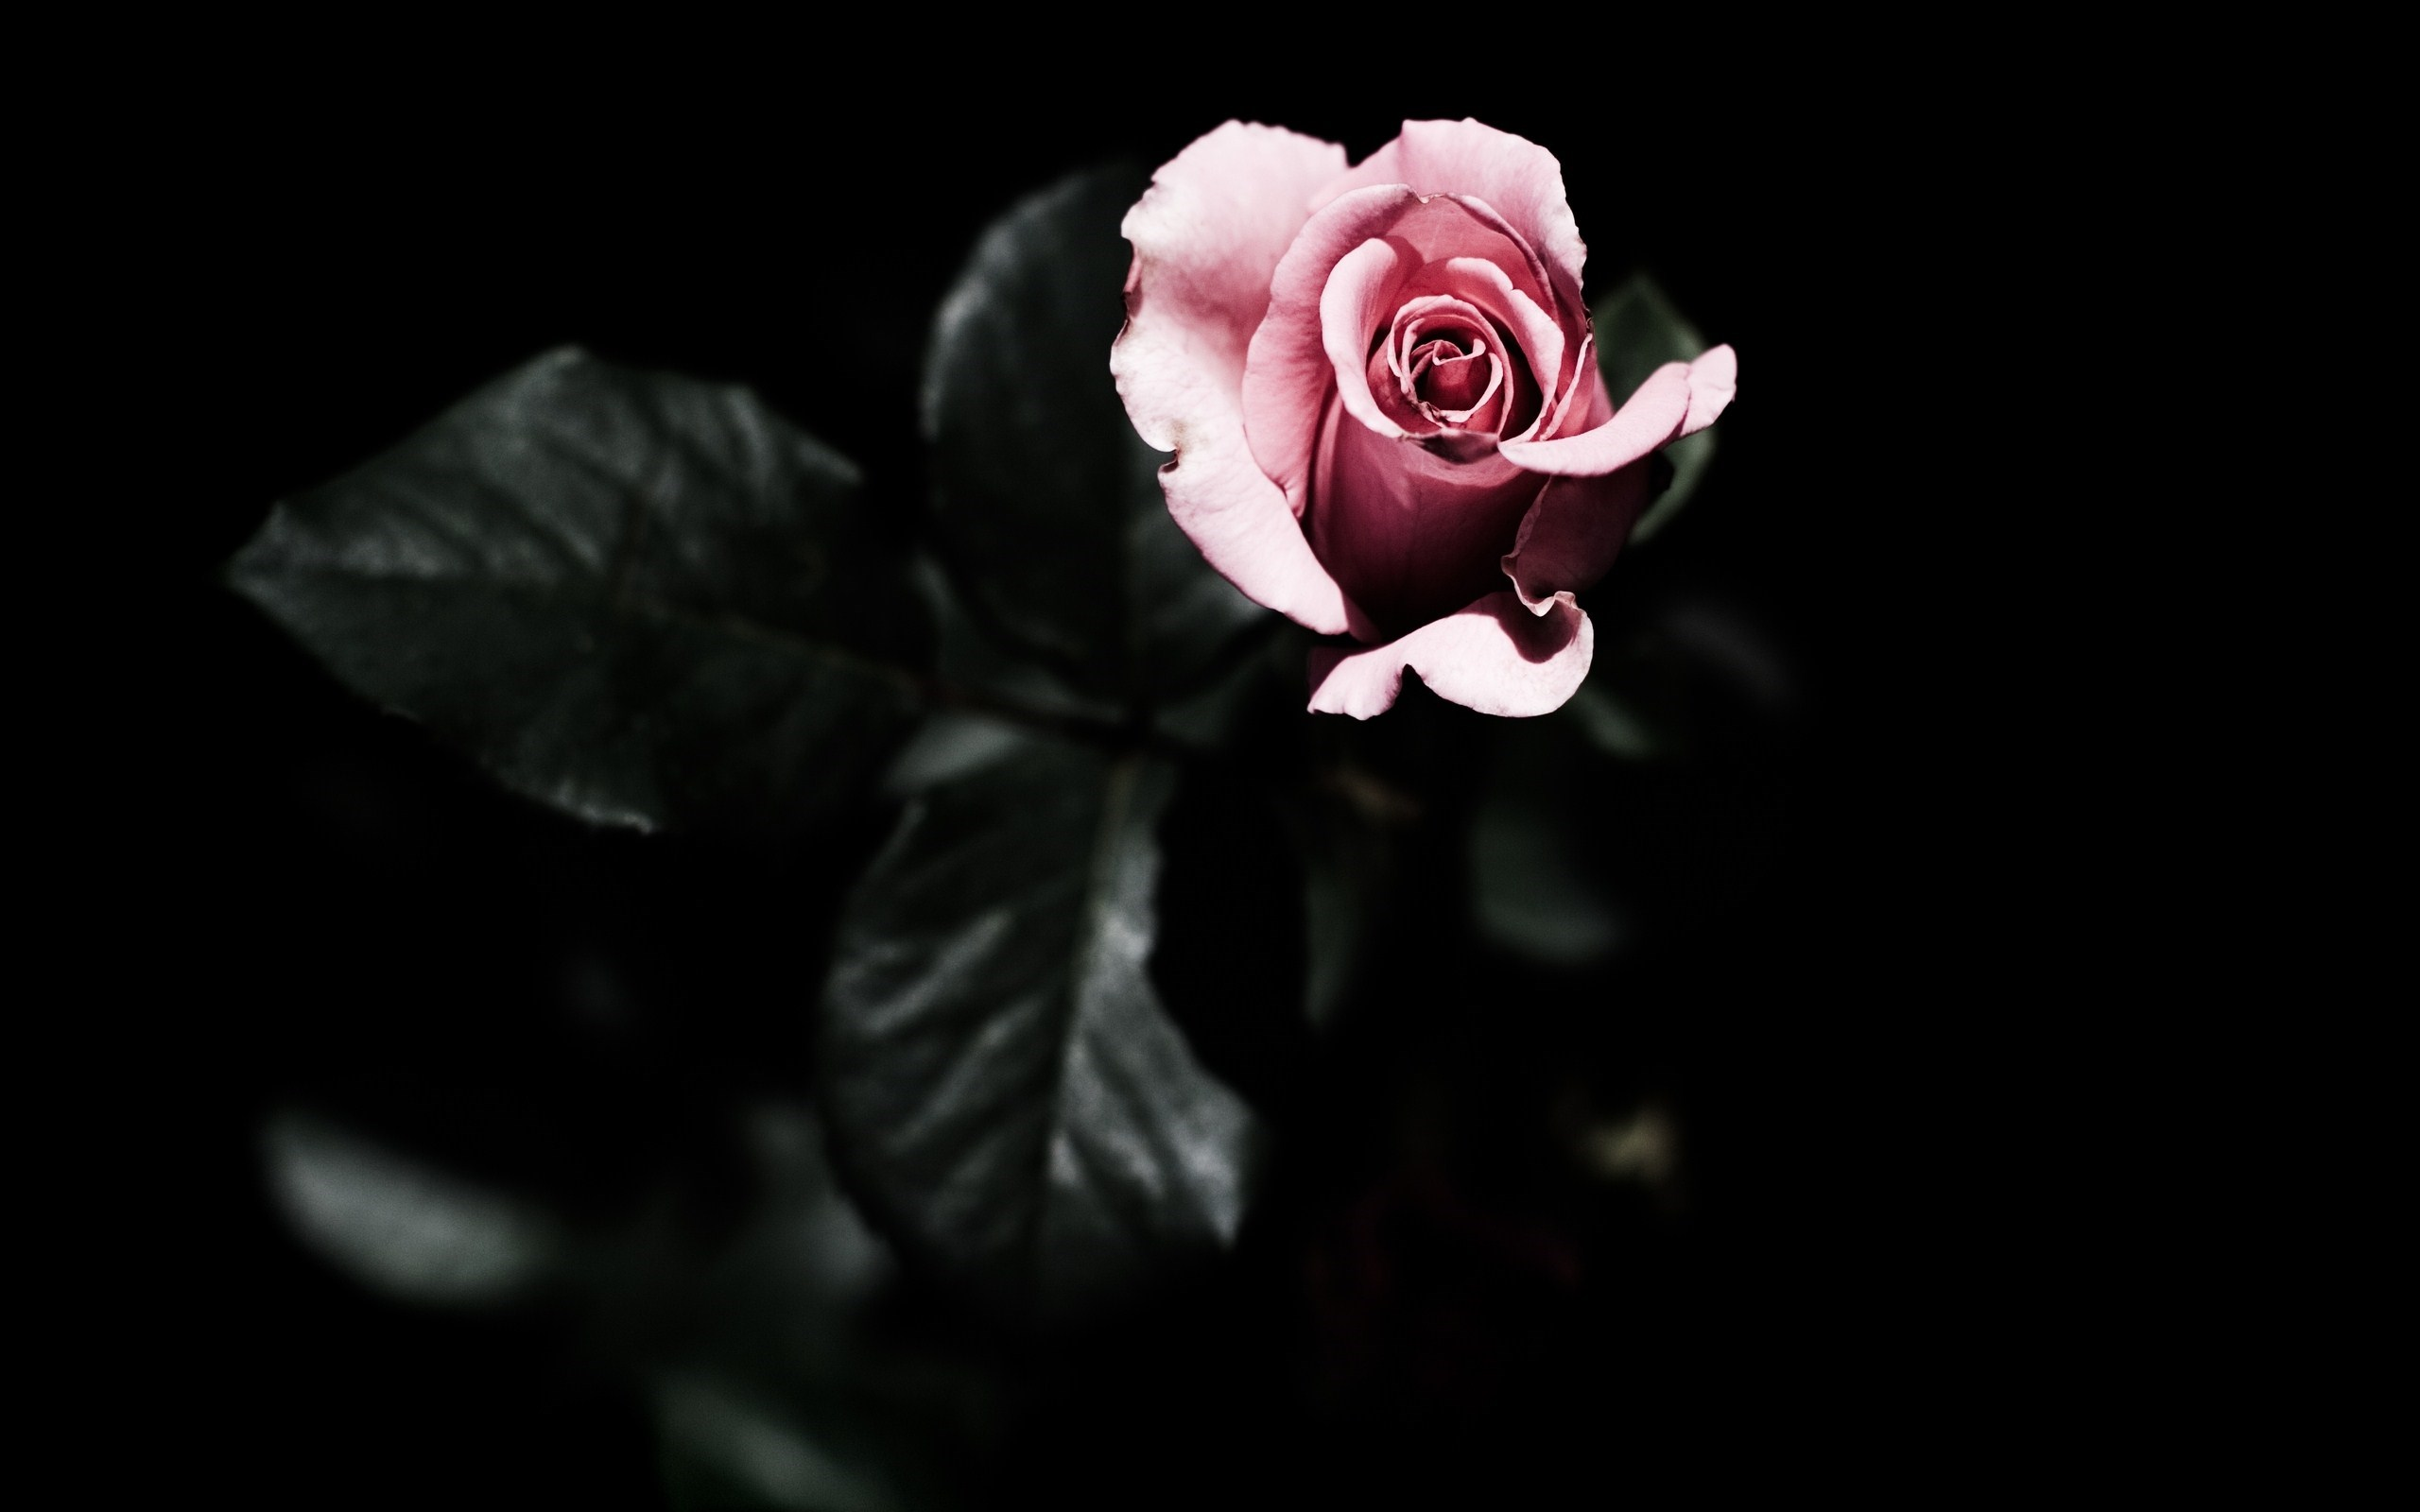 Pink roses wallpaper flower hd desktop wallpapers 4k hd - Pink rose black background wallpaper ...